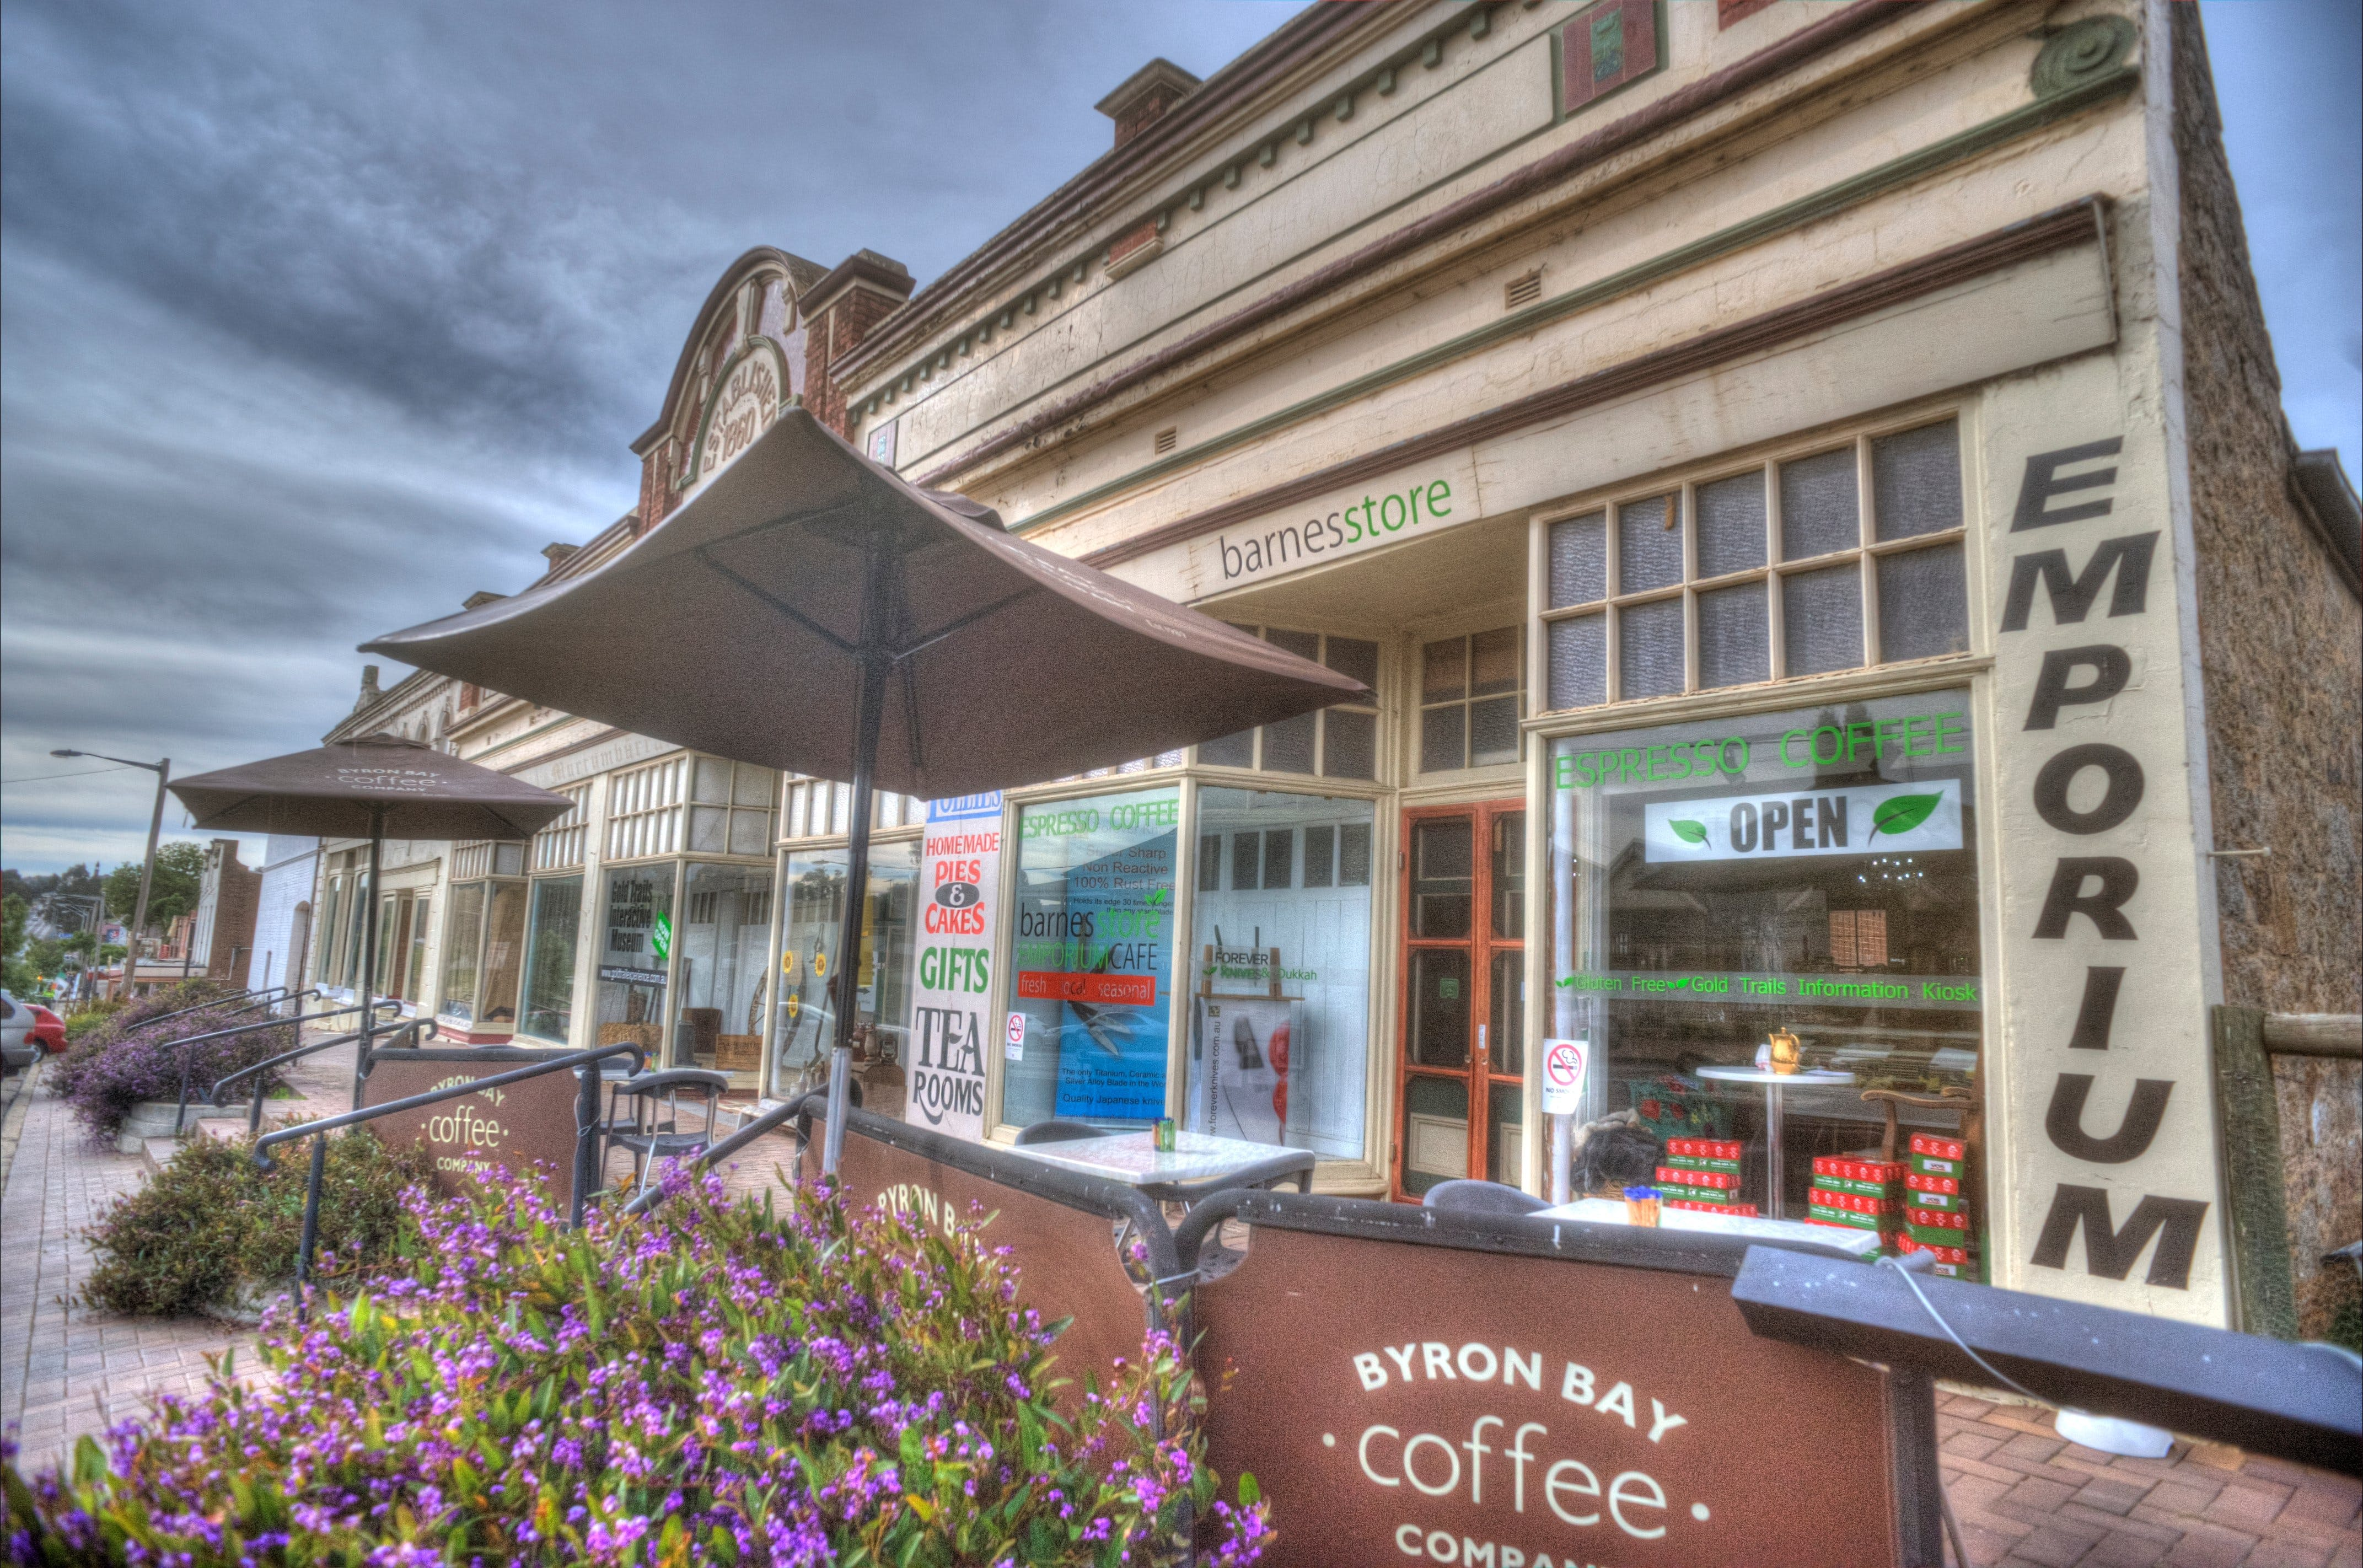 Barnes Store Emporium and Caf - Accommodation Daintree